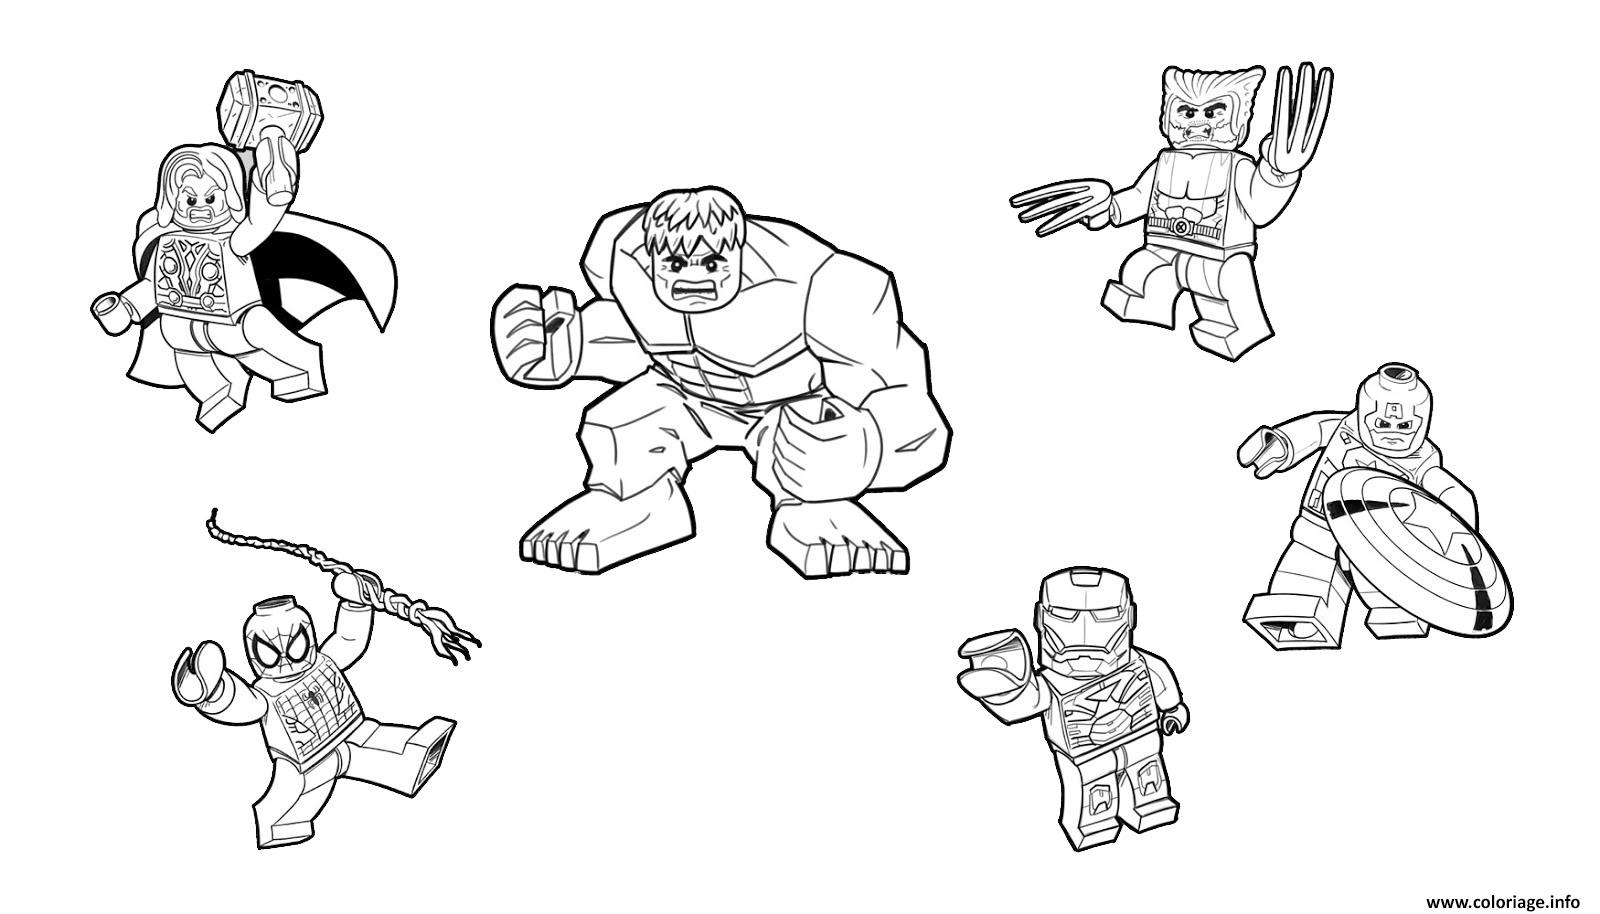 Coloriage team lego marvel hulk ironman spiderman thor america wolverine dessin - Photo de spiderman a imprimer gratuit ...